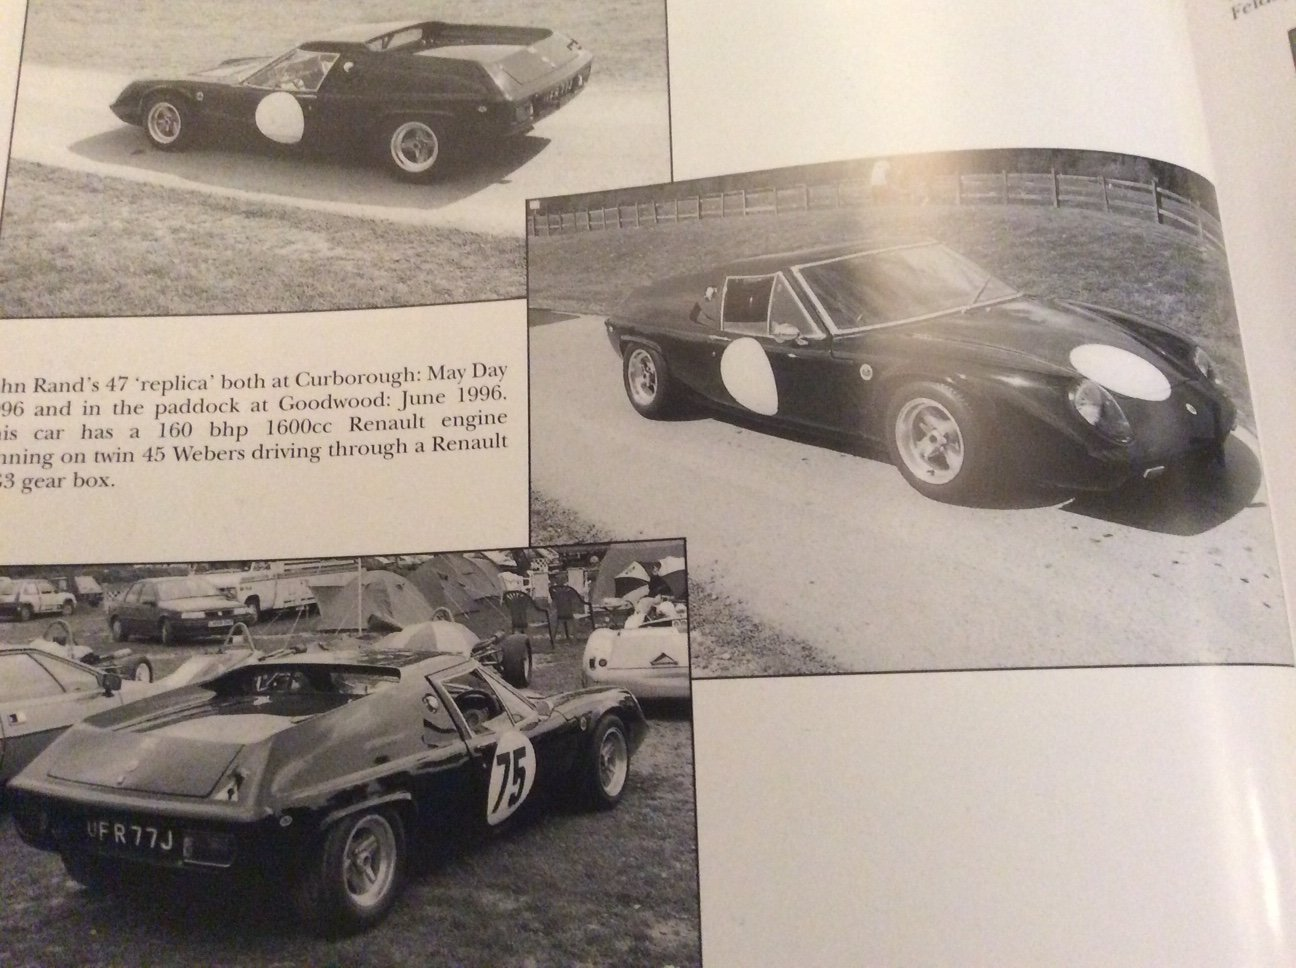 1971 Lotus Europa S2 (S1 Looks ) , Road legal Hillclimb For Sale (picture 3 of 5)